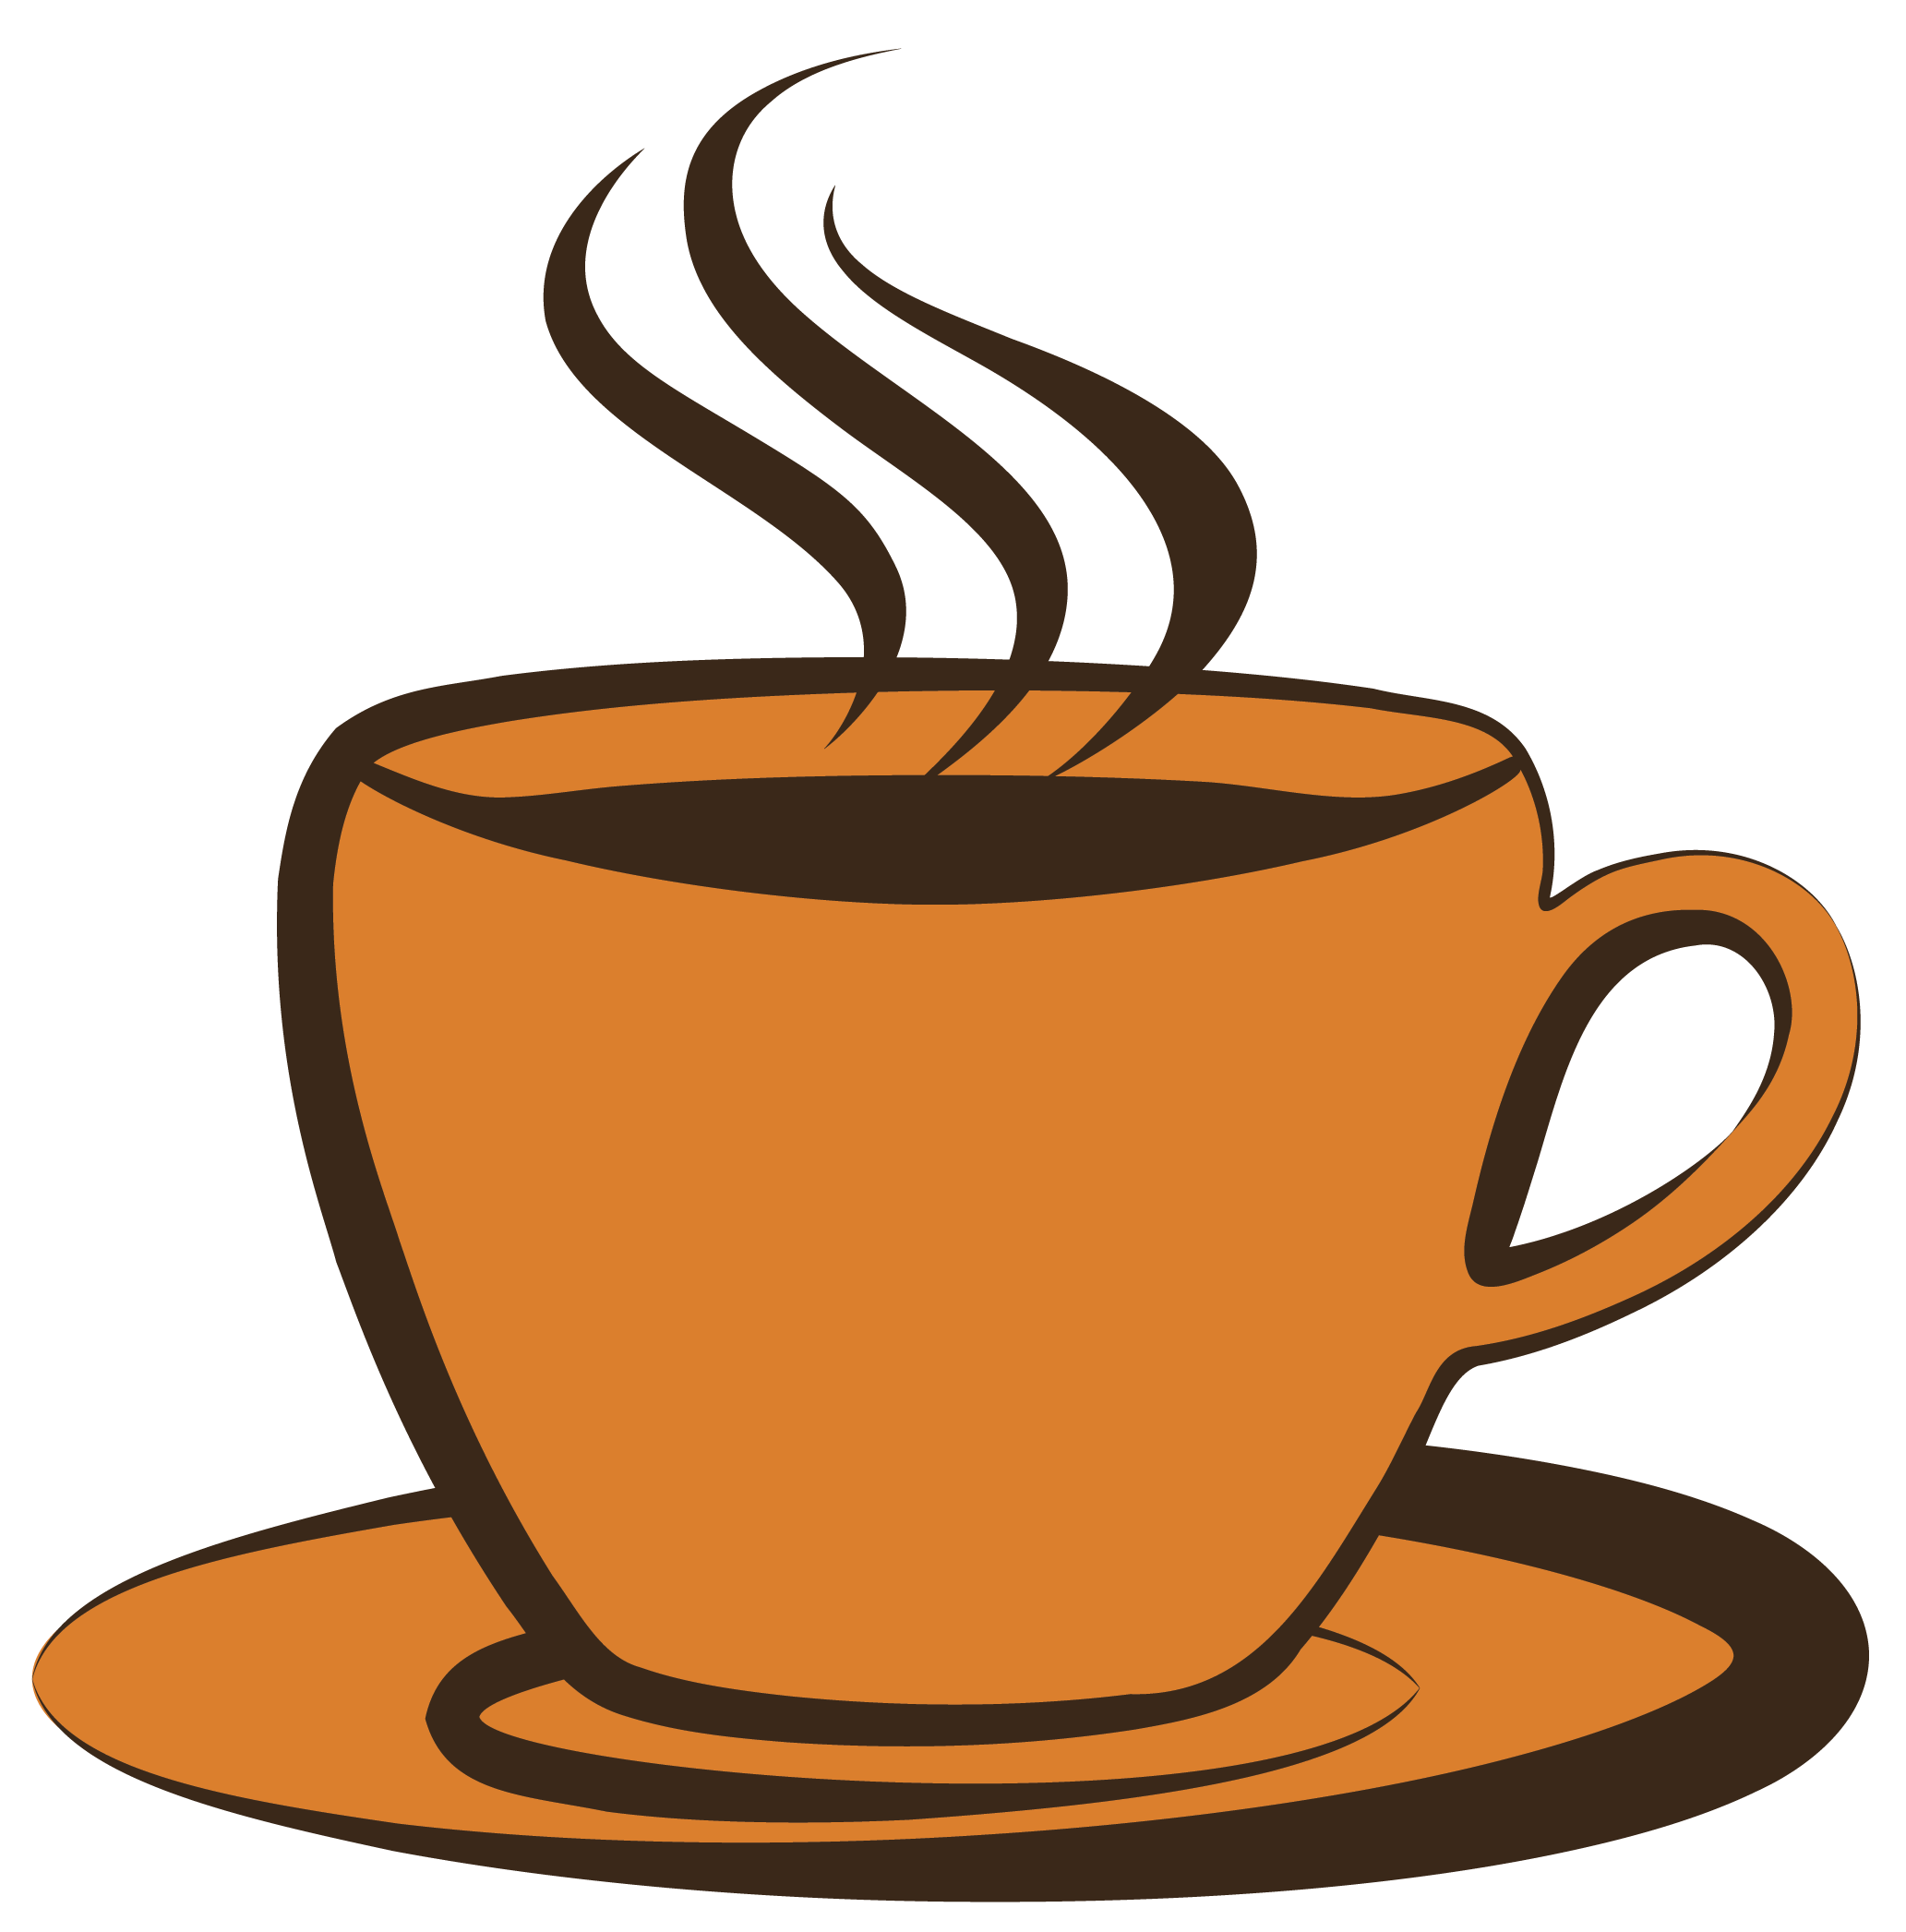 Cup HD PNG - 143649